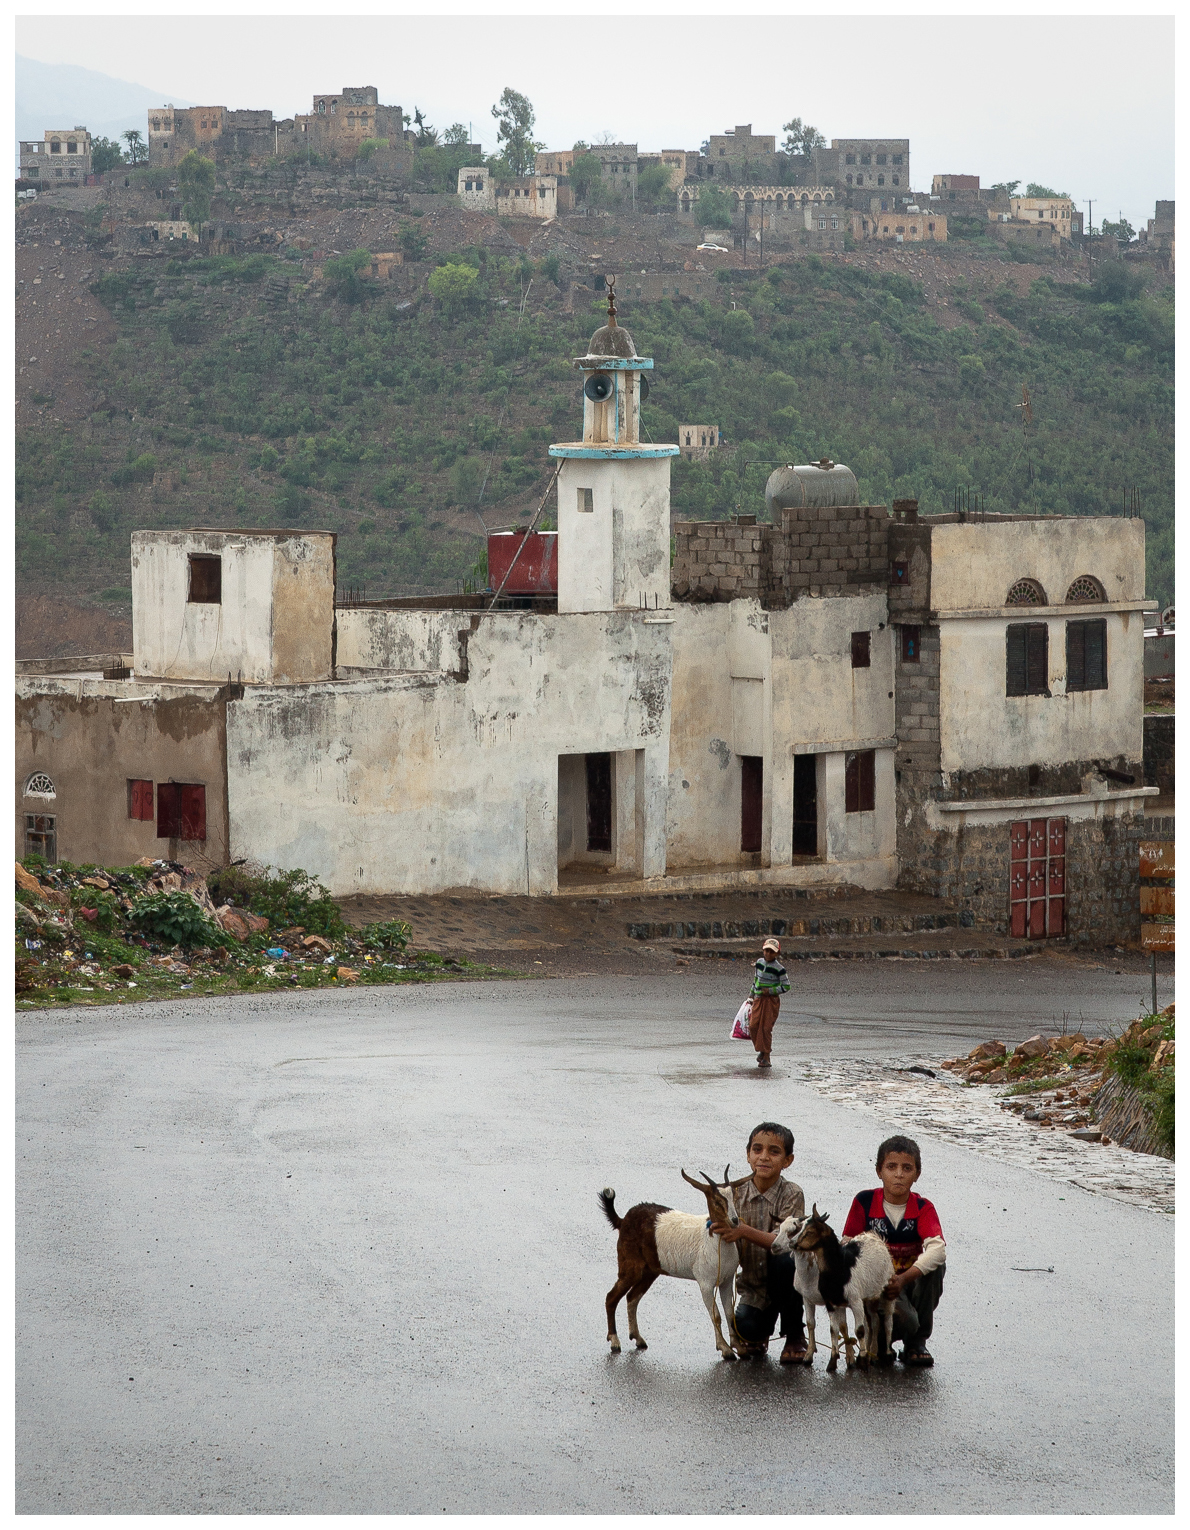 16Hill Mosque and Boys With Goats_DSC3264.jpg